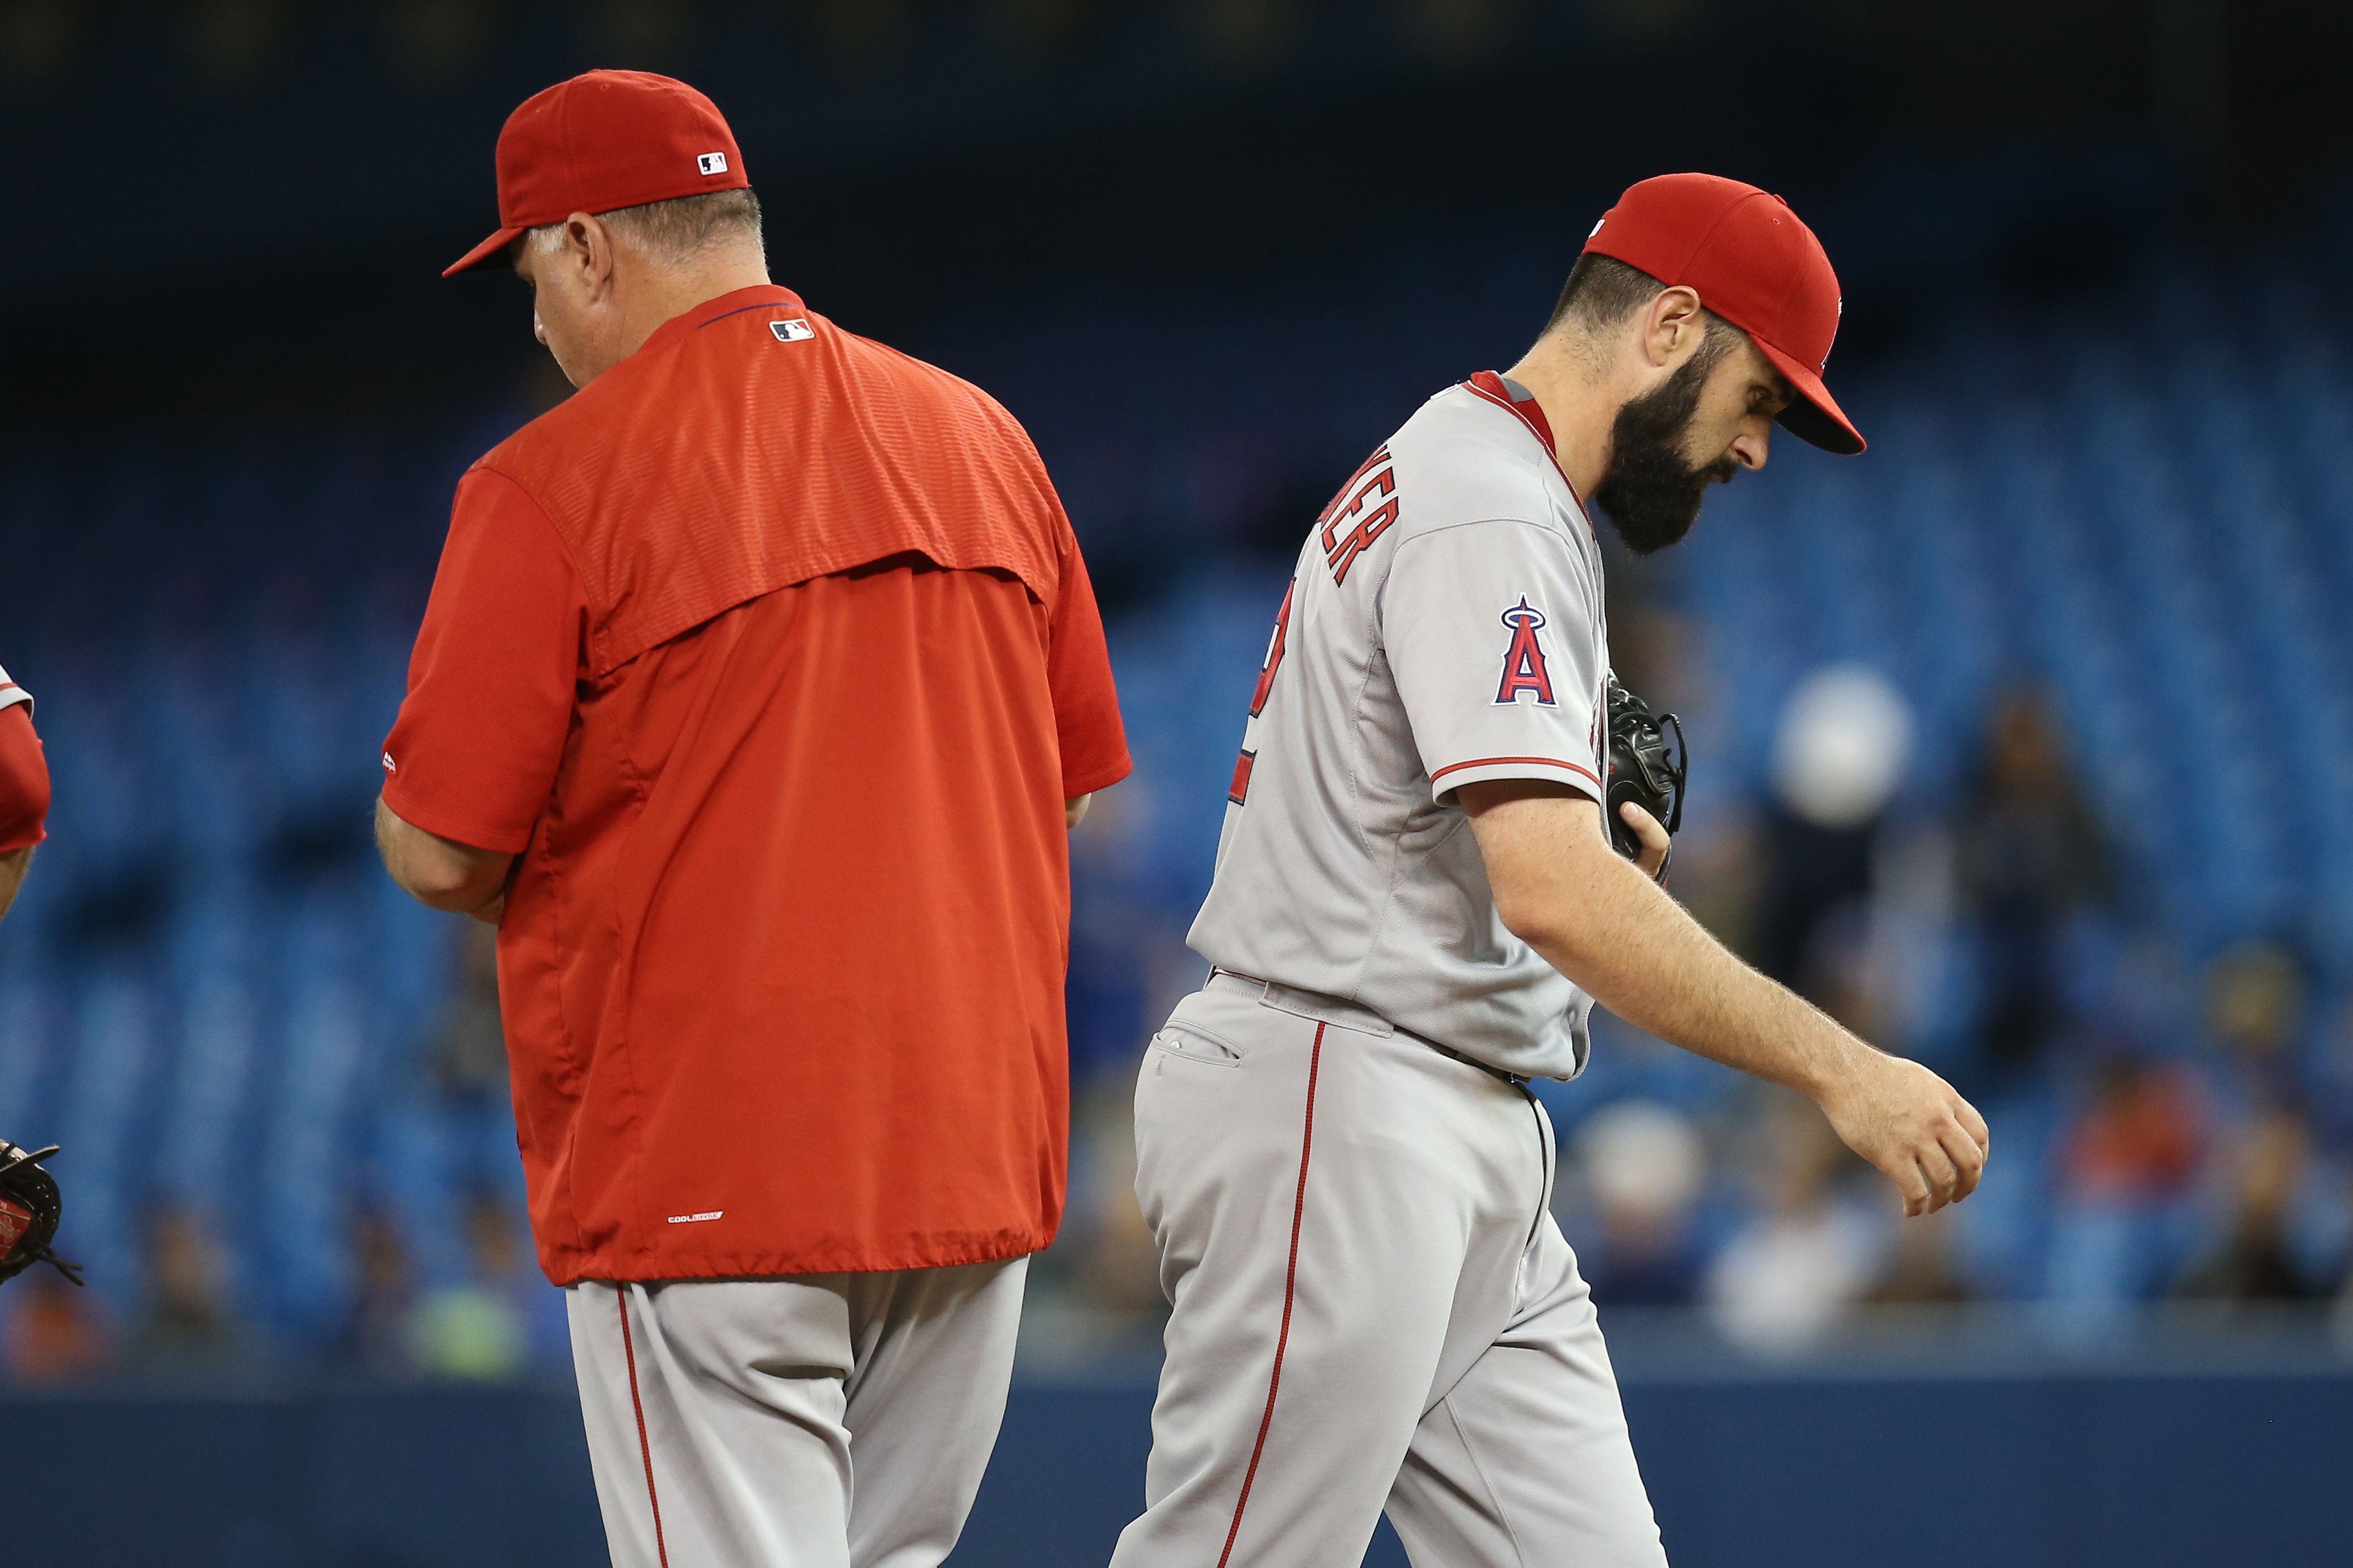 TORONTO, CANADA - MAY 21: Matt Shoemaker #52 of the Los Angeles Angels of Anaheim exits the game as he is relieved by manager Mike Scioscia #14 in the seventh inning during MLB game action against the Toronto Blue Jays on May 21, 2015 at Rogers Centre in Toronto, Ontario, Canada. (Photo by Tom Szczerbowski/Getty Images)